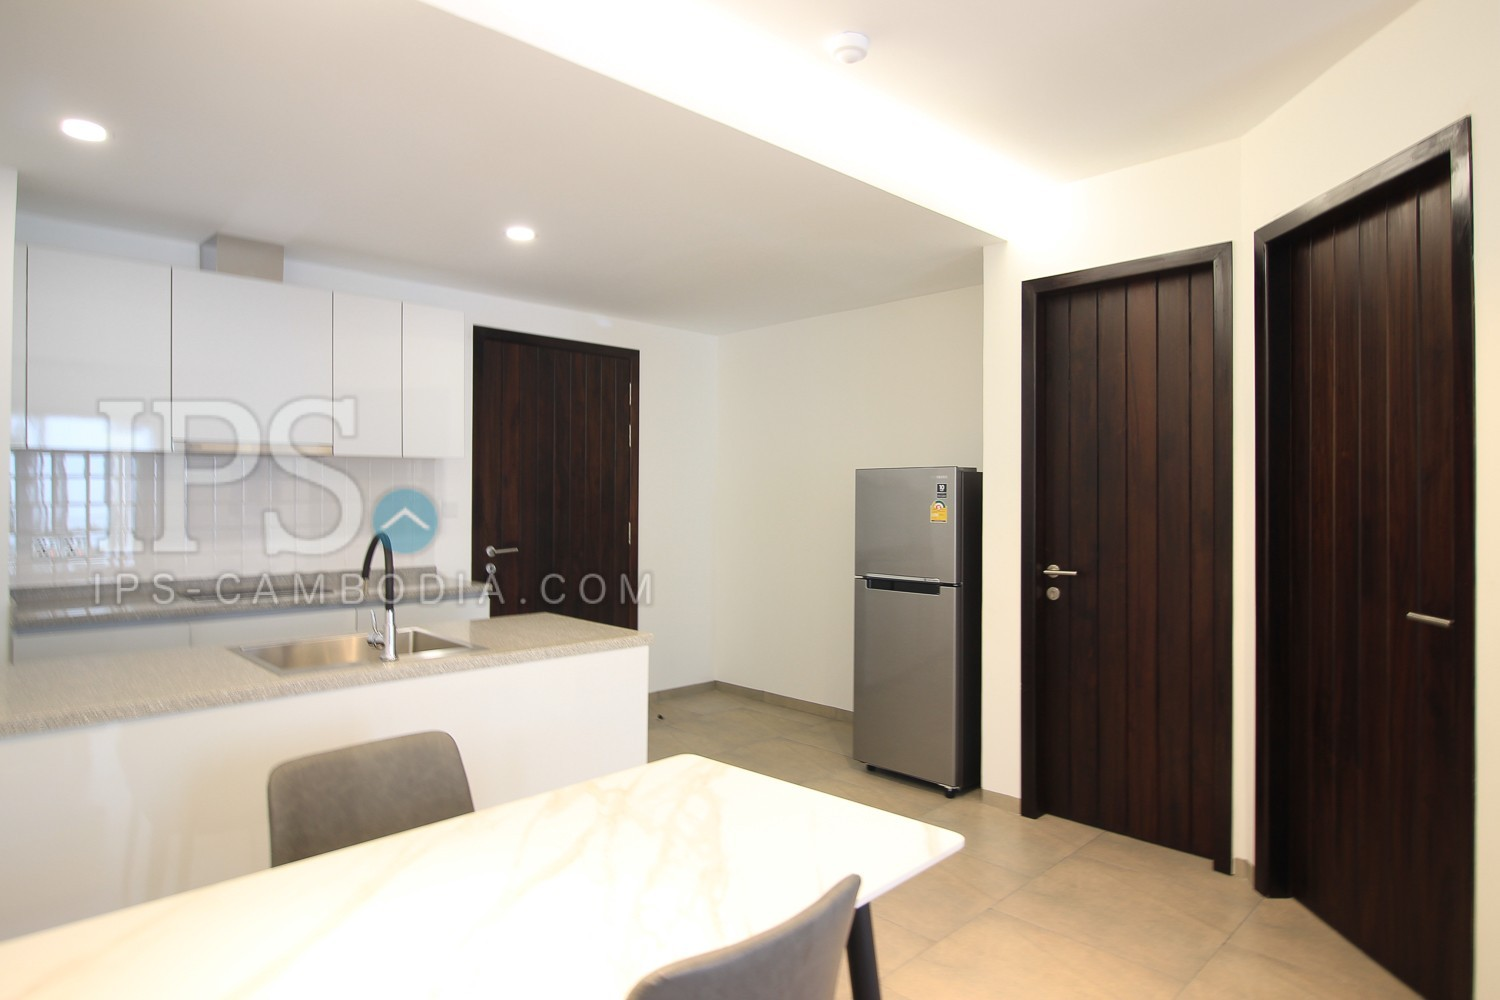 1 Bedroom Condo For Rent - Khan Meanchey, Phnom Penh